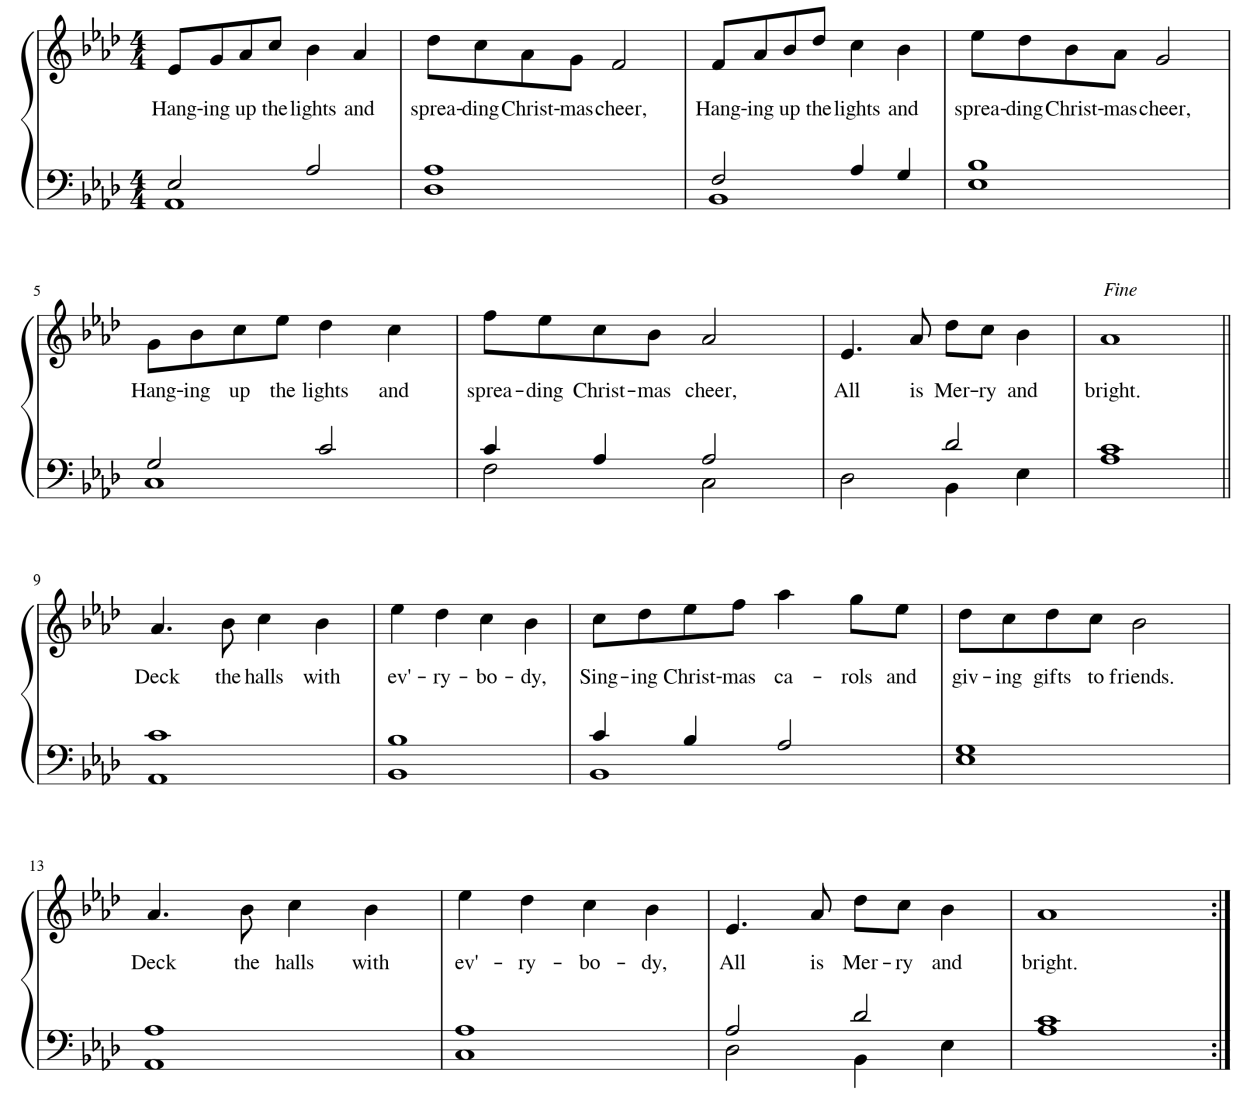 """Image of an original music composition (melody plus accompaniment) called """"All is Merry and Bright"""""""